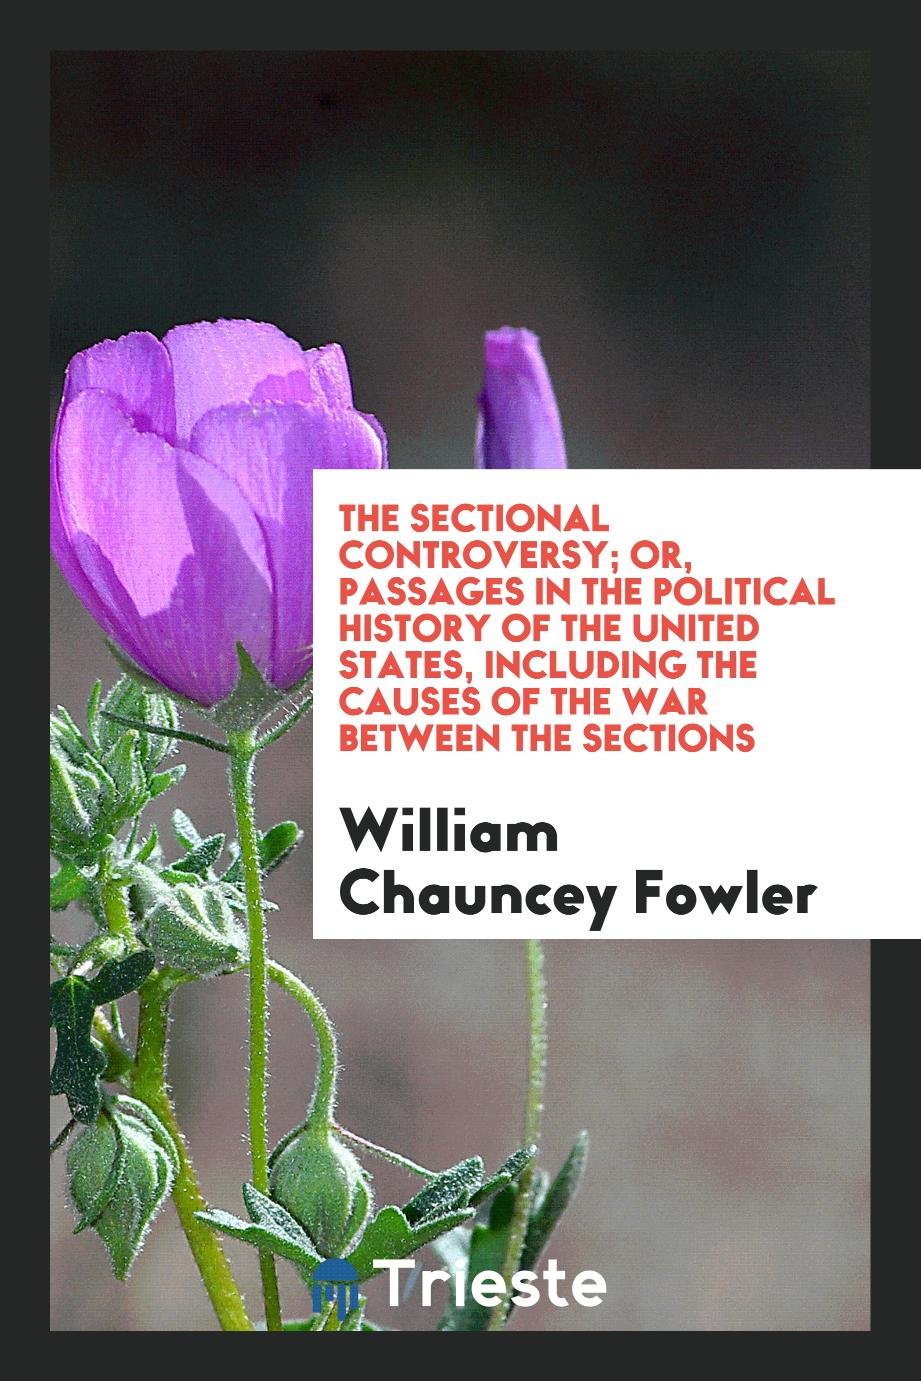 The Sectional Controversy; Or, Passages in the Political History of the United States, Including the Causes of the War Between the Sections